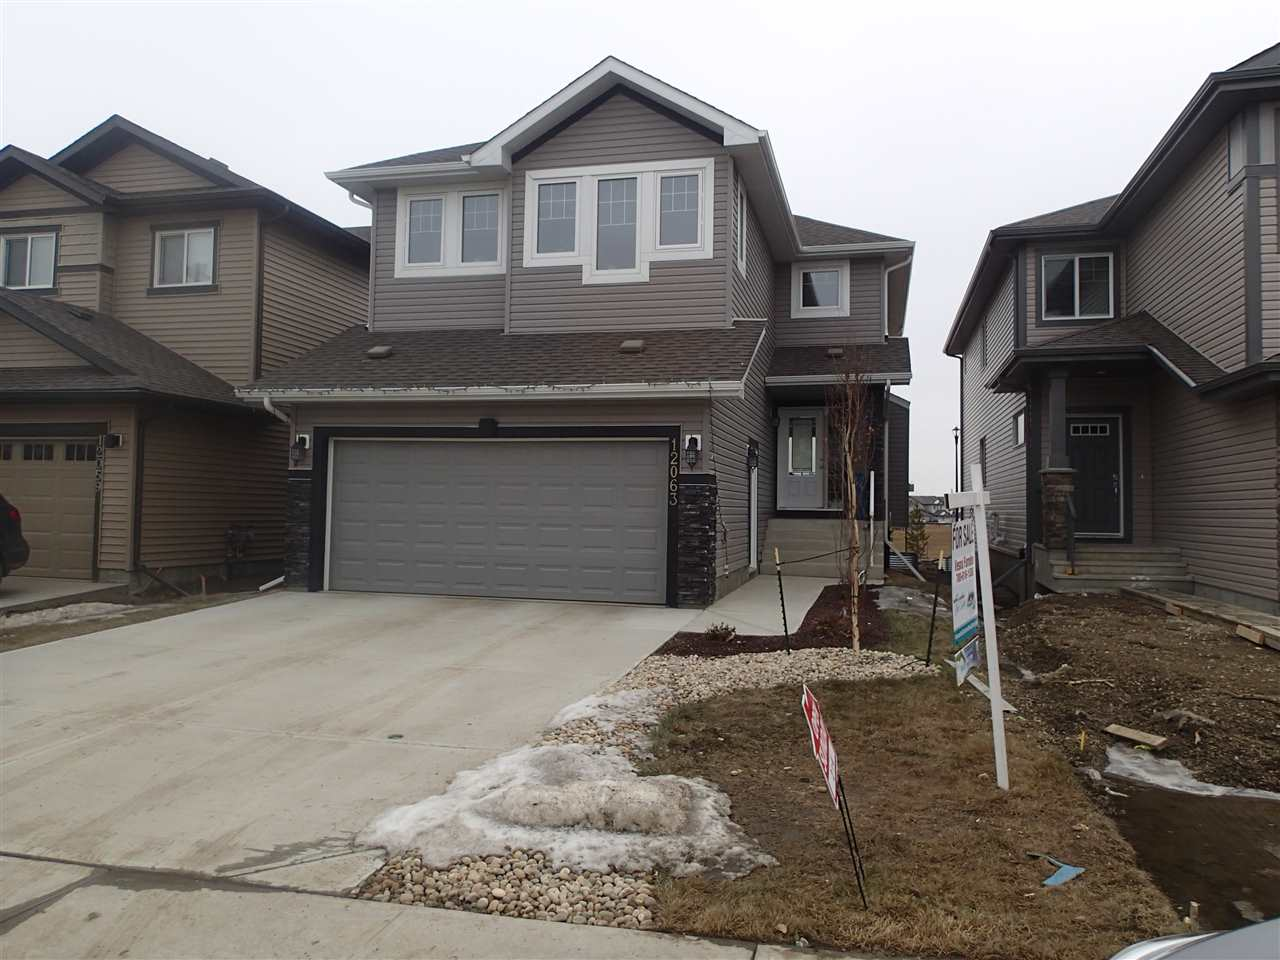 MLS® listing #E4145950 for sale located at 12063 177 Avenue NW